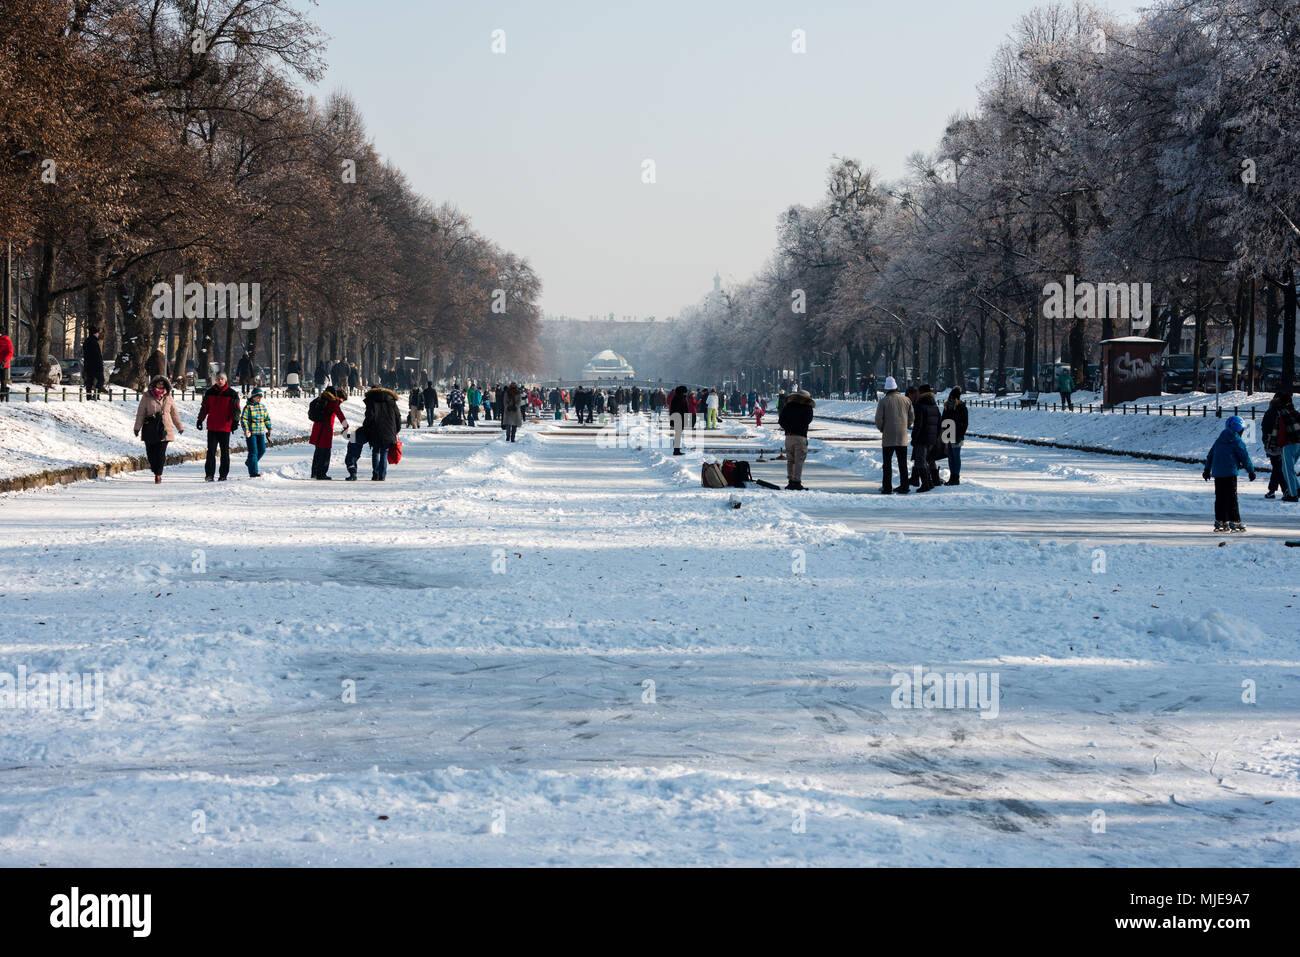 Skaters on the frozen Nymphenburger Kanal in Munich - Stock Image